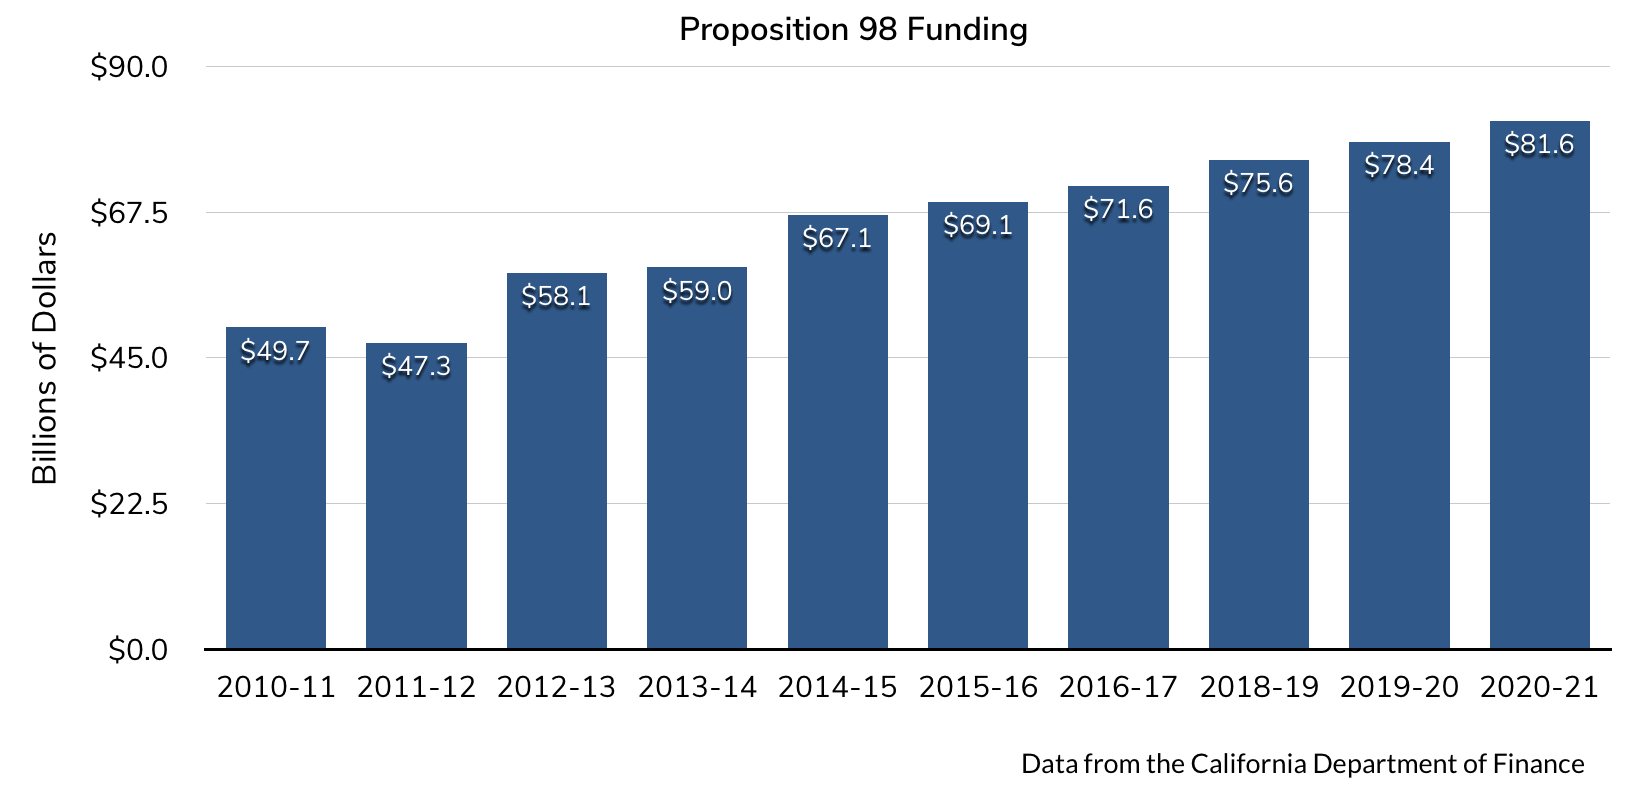 Proposition 98 Funding for K-14 Education